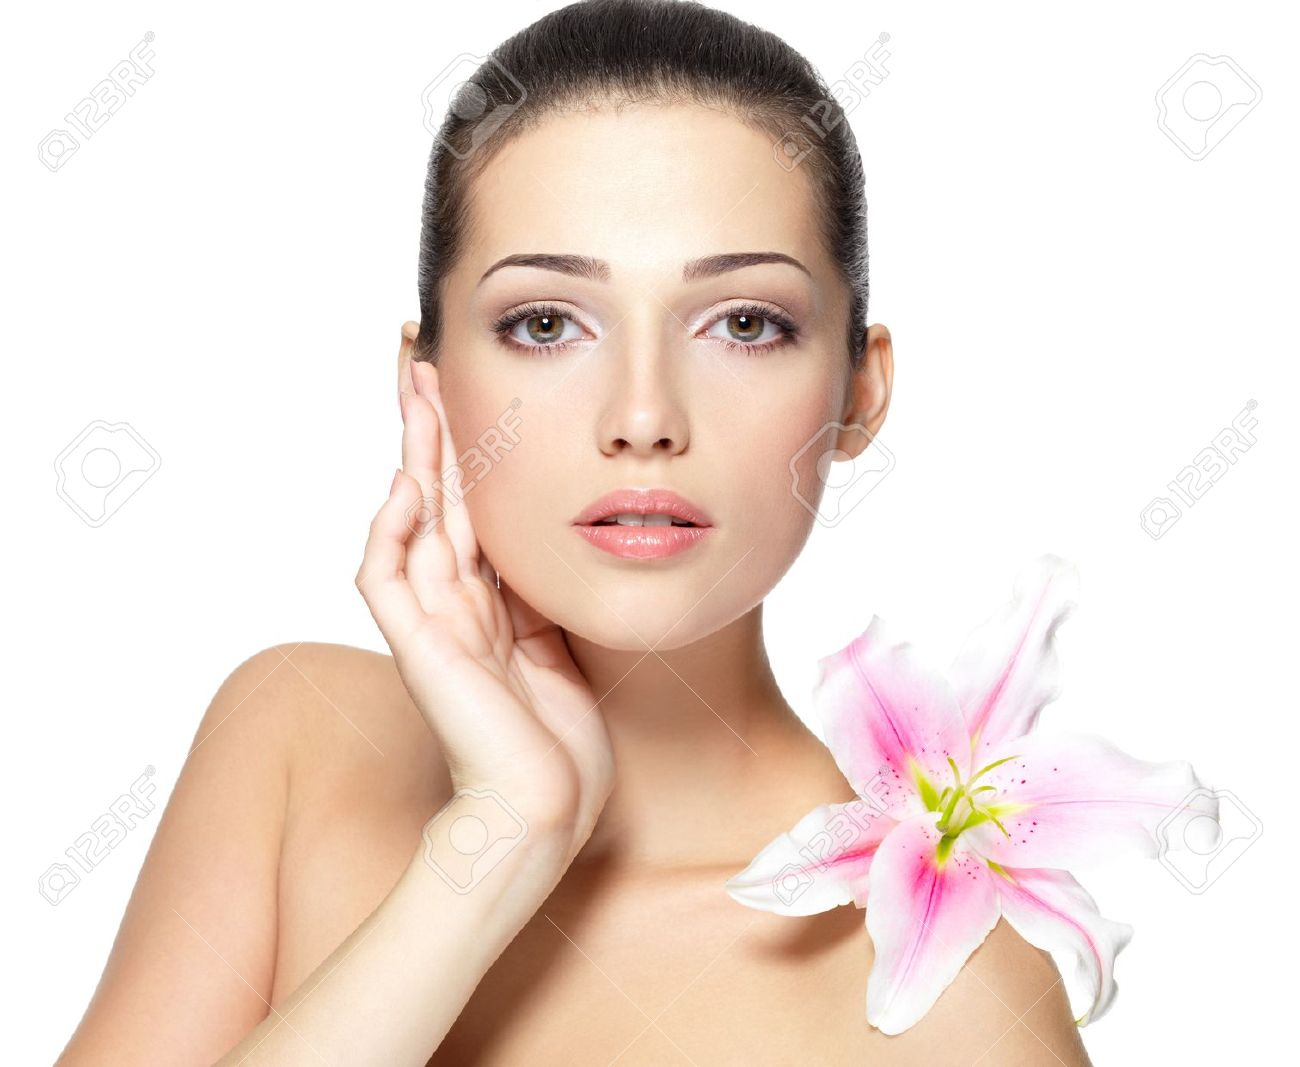 Beauty face of young woman with flower beauty treatment concept beauty face of young woman with flower beauty treatment concept portrait over white background izmirmasajfo Image collections